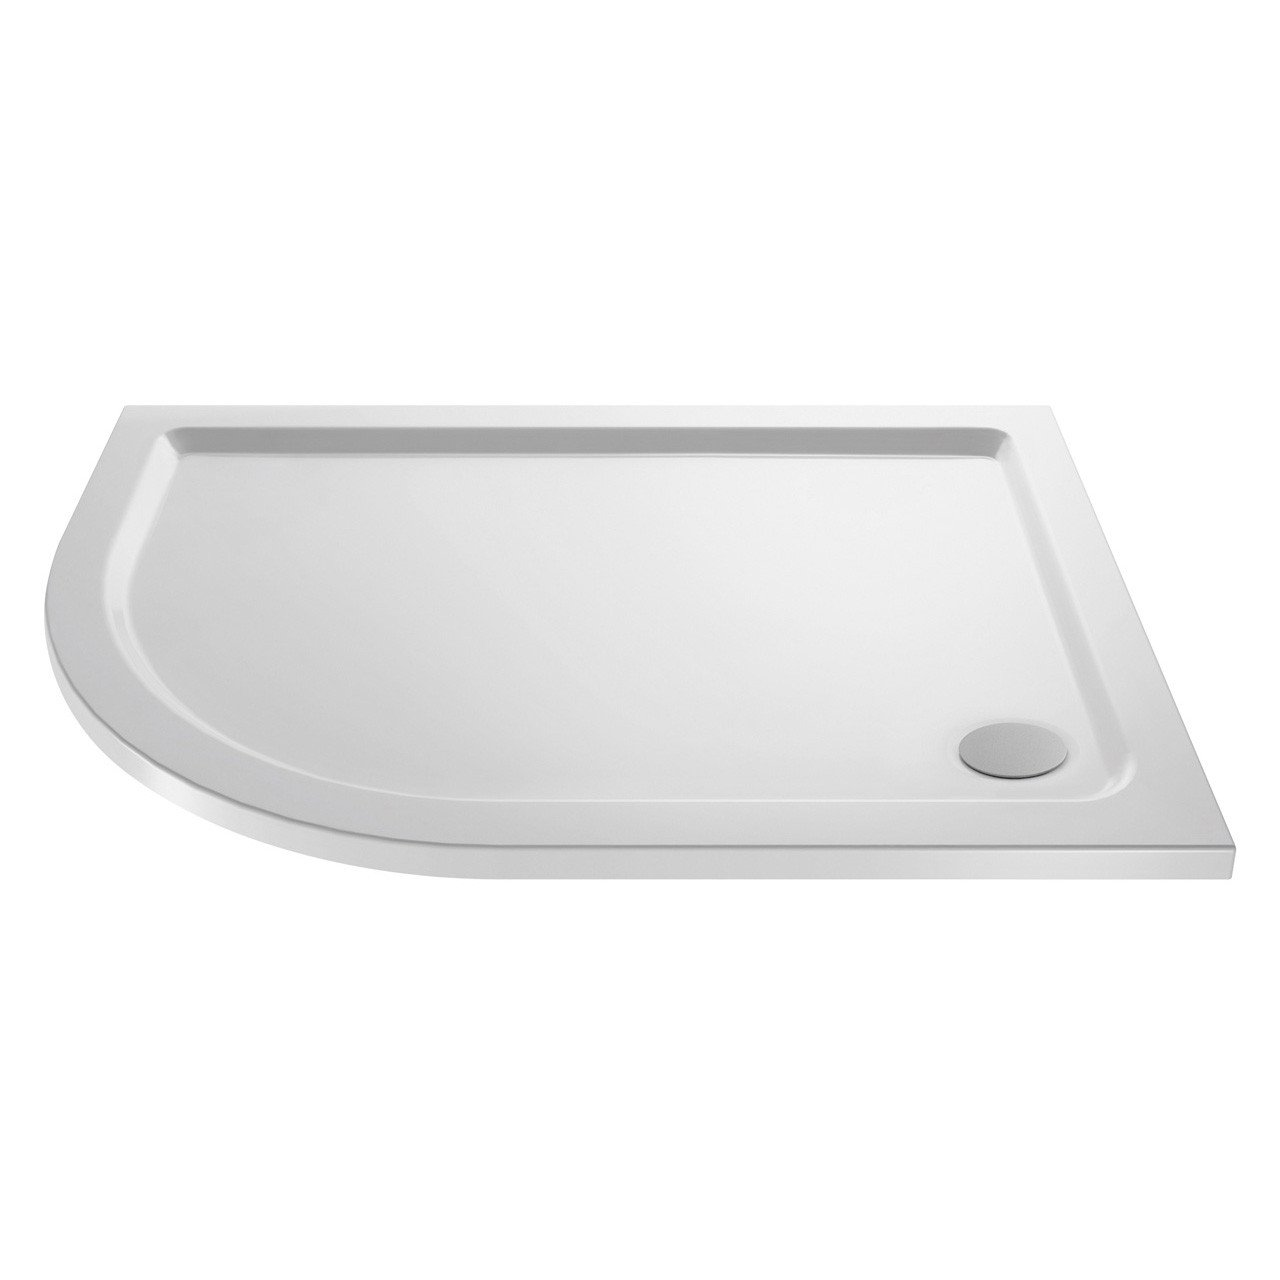 Premiere Pearlstone 1200mm x 800mm x 40mm Left Hand Offset Quadrant Shower Tray - NTP112